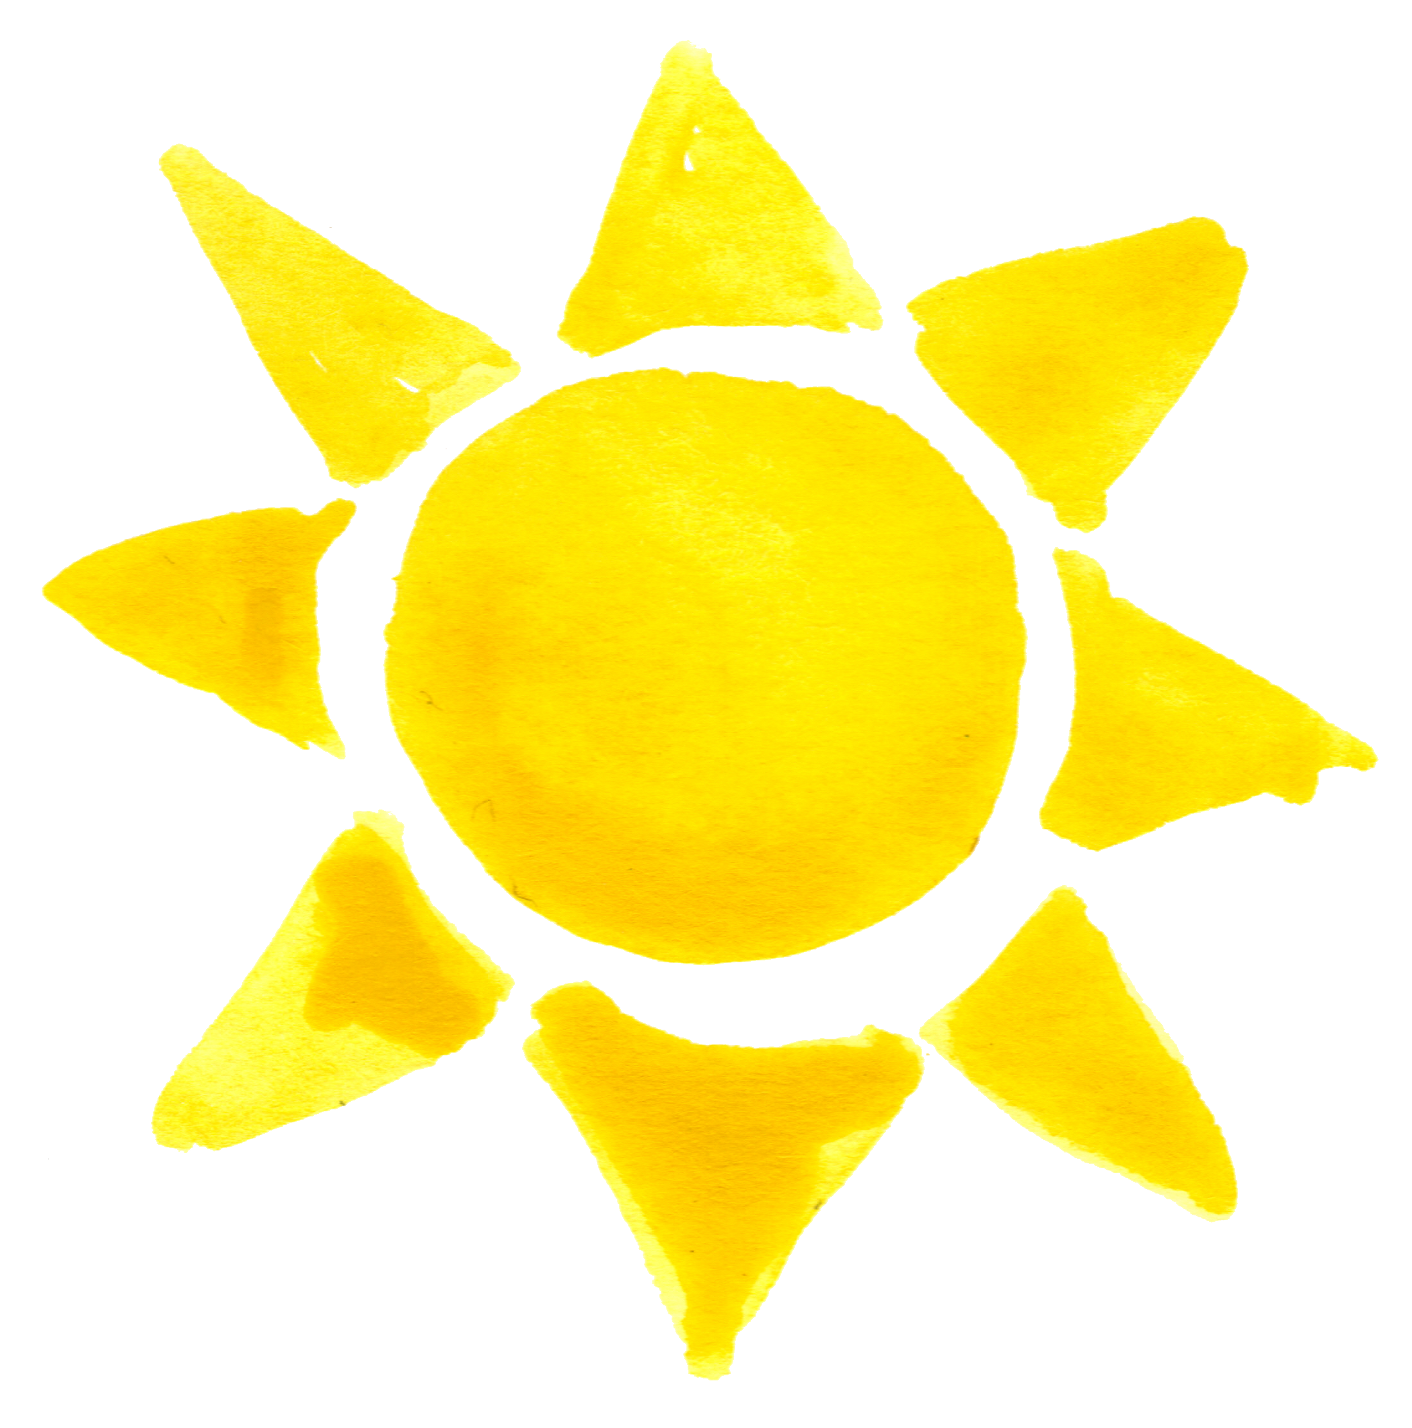 Star The Sun Transparent Background Pictures